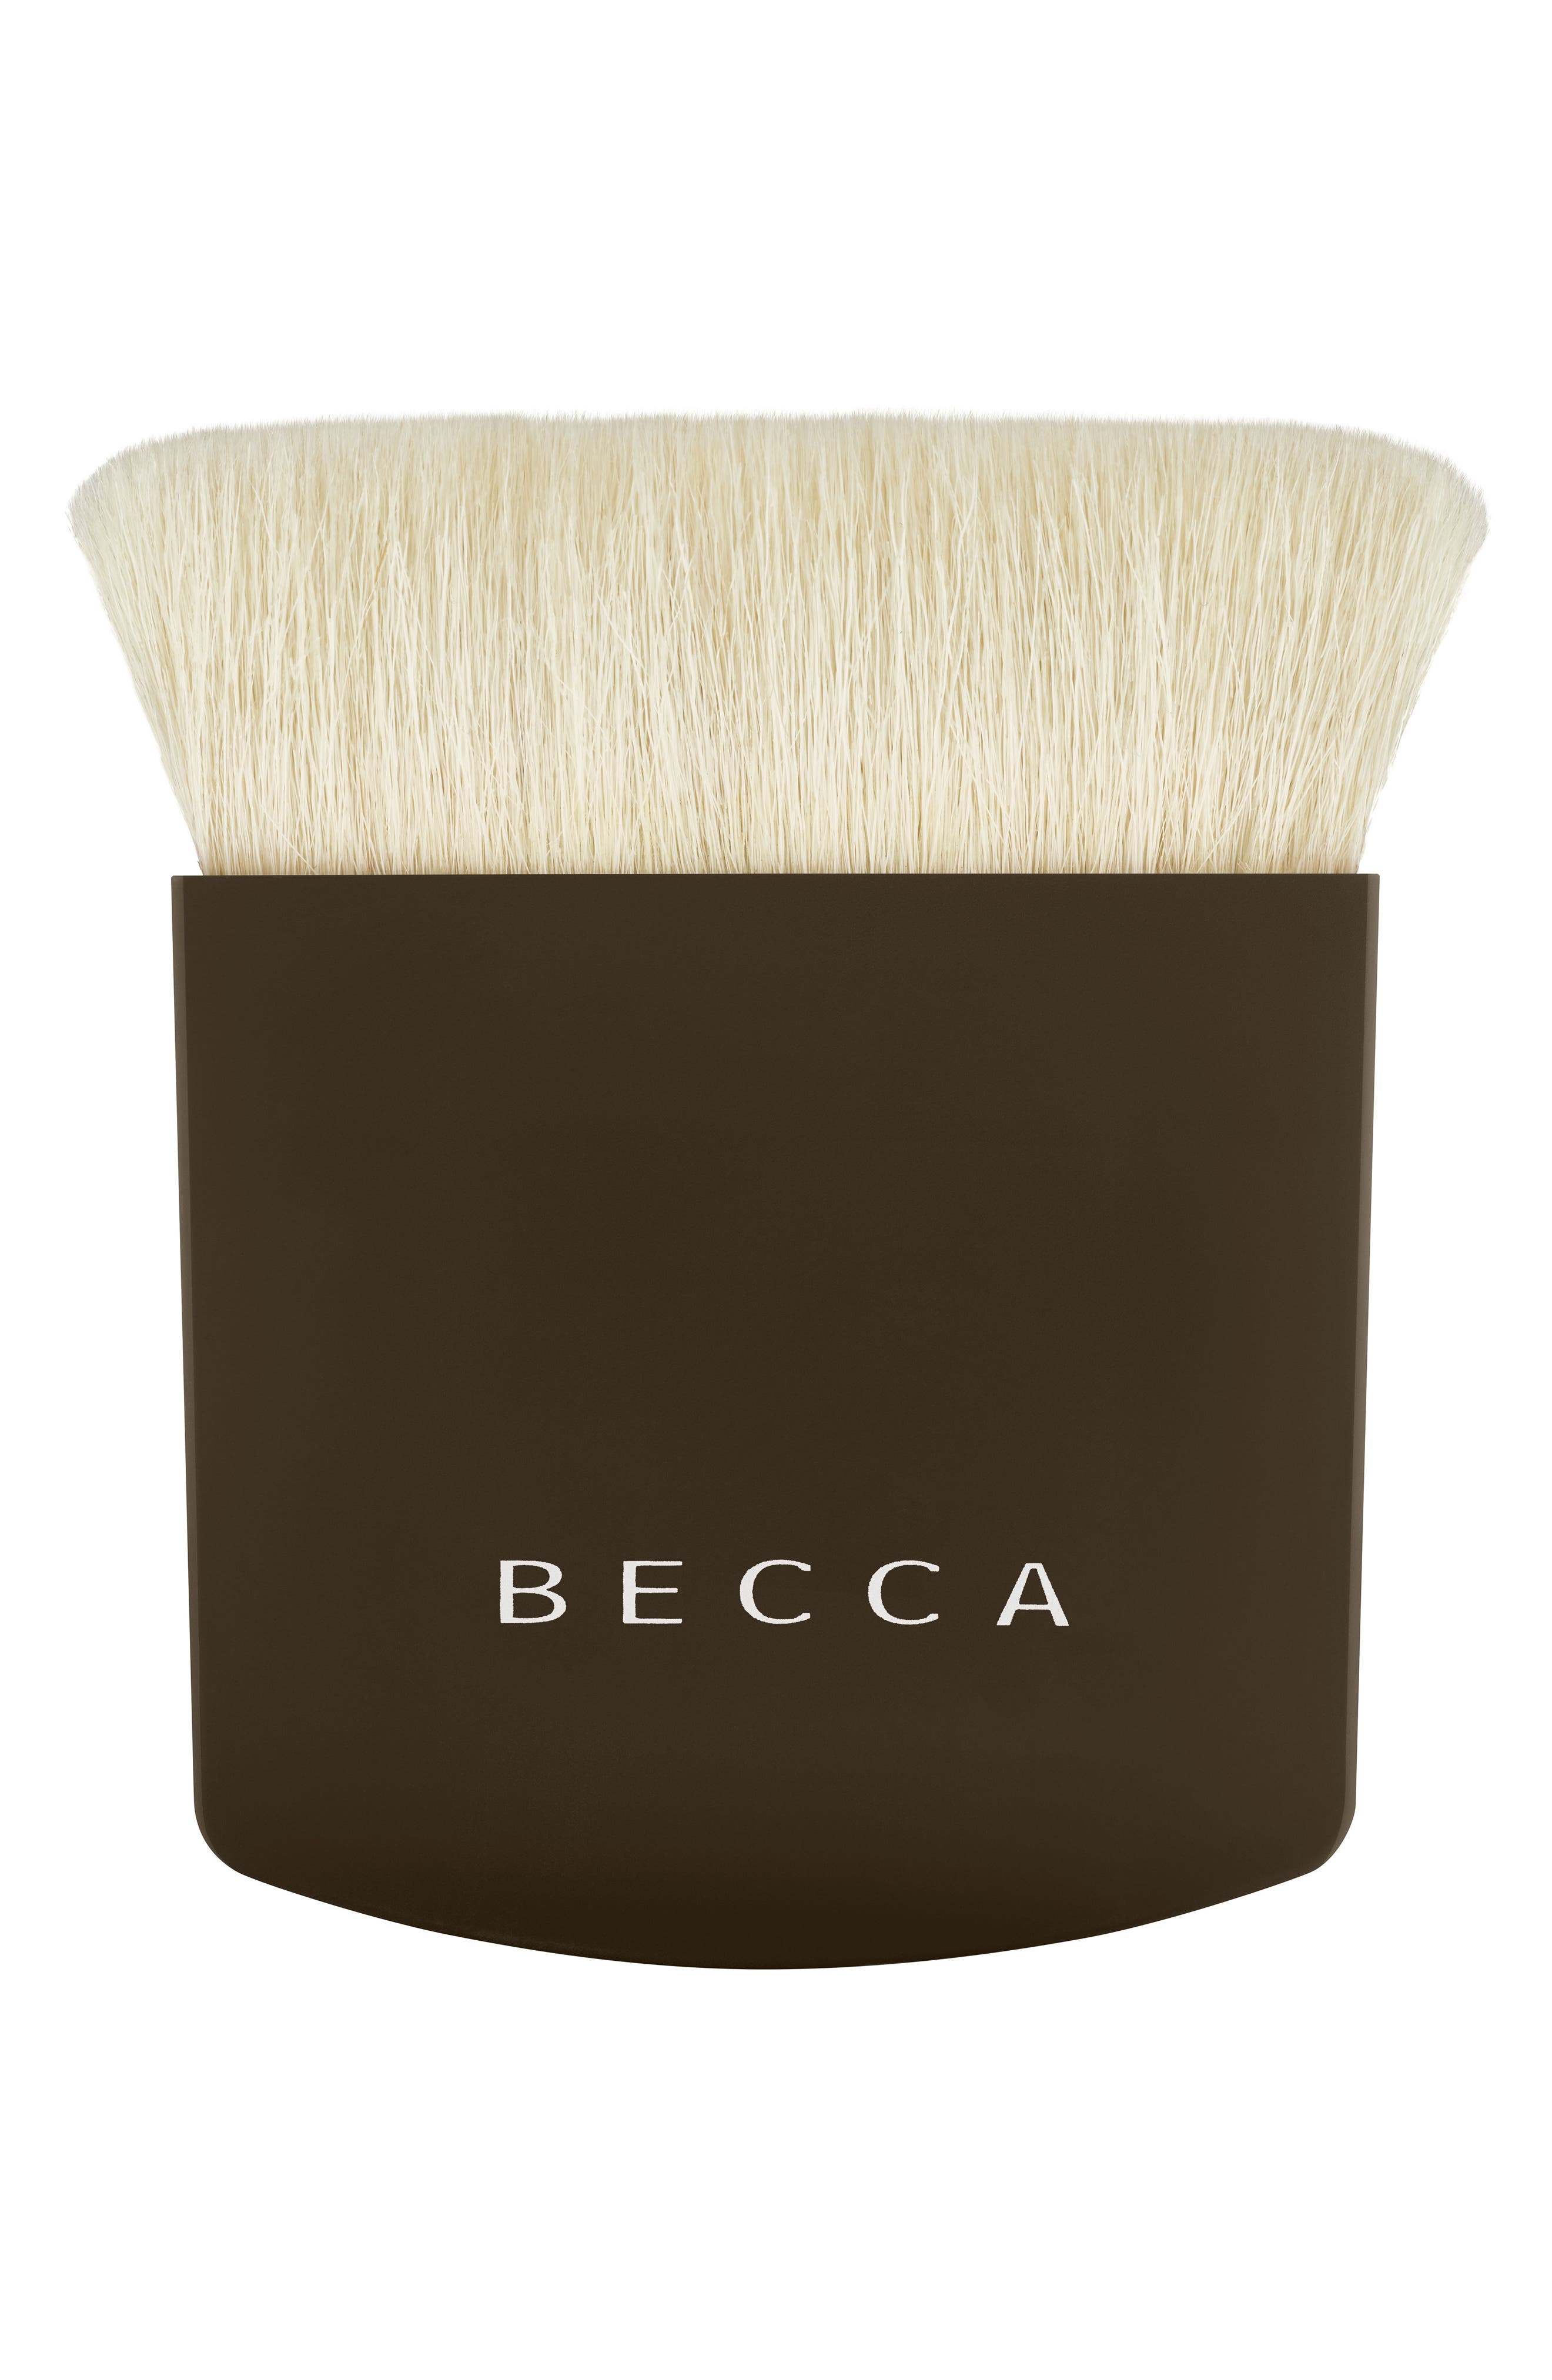 BECCA The One Perfecting Brush,                             Main thumbnail 1, color,                             No Color